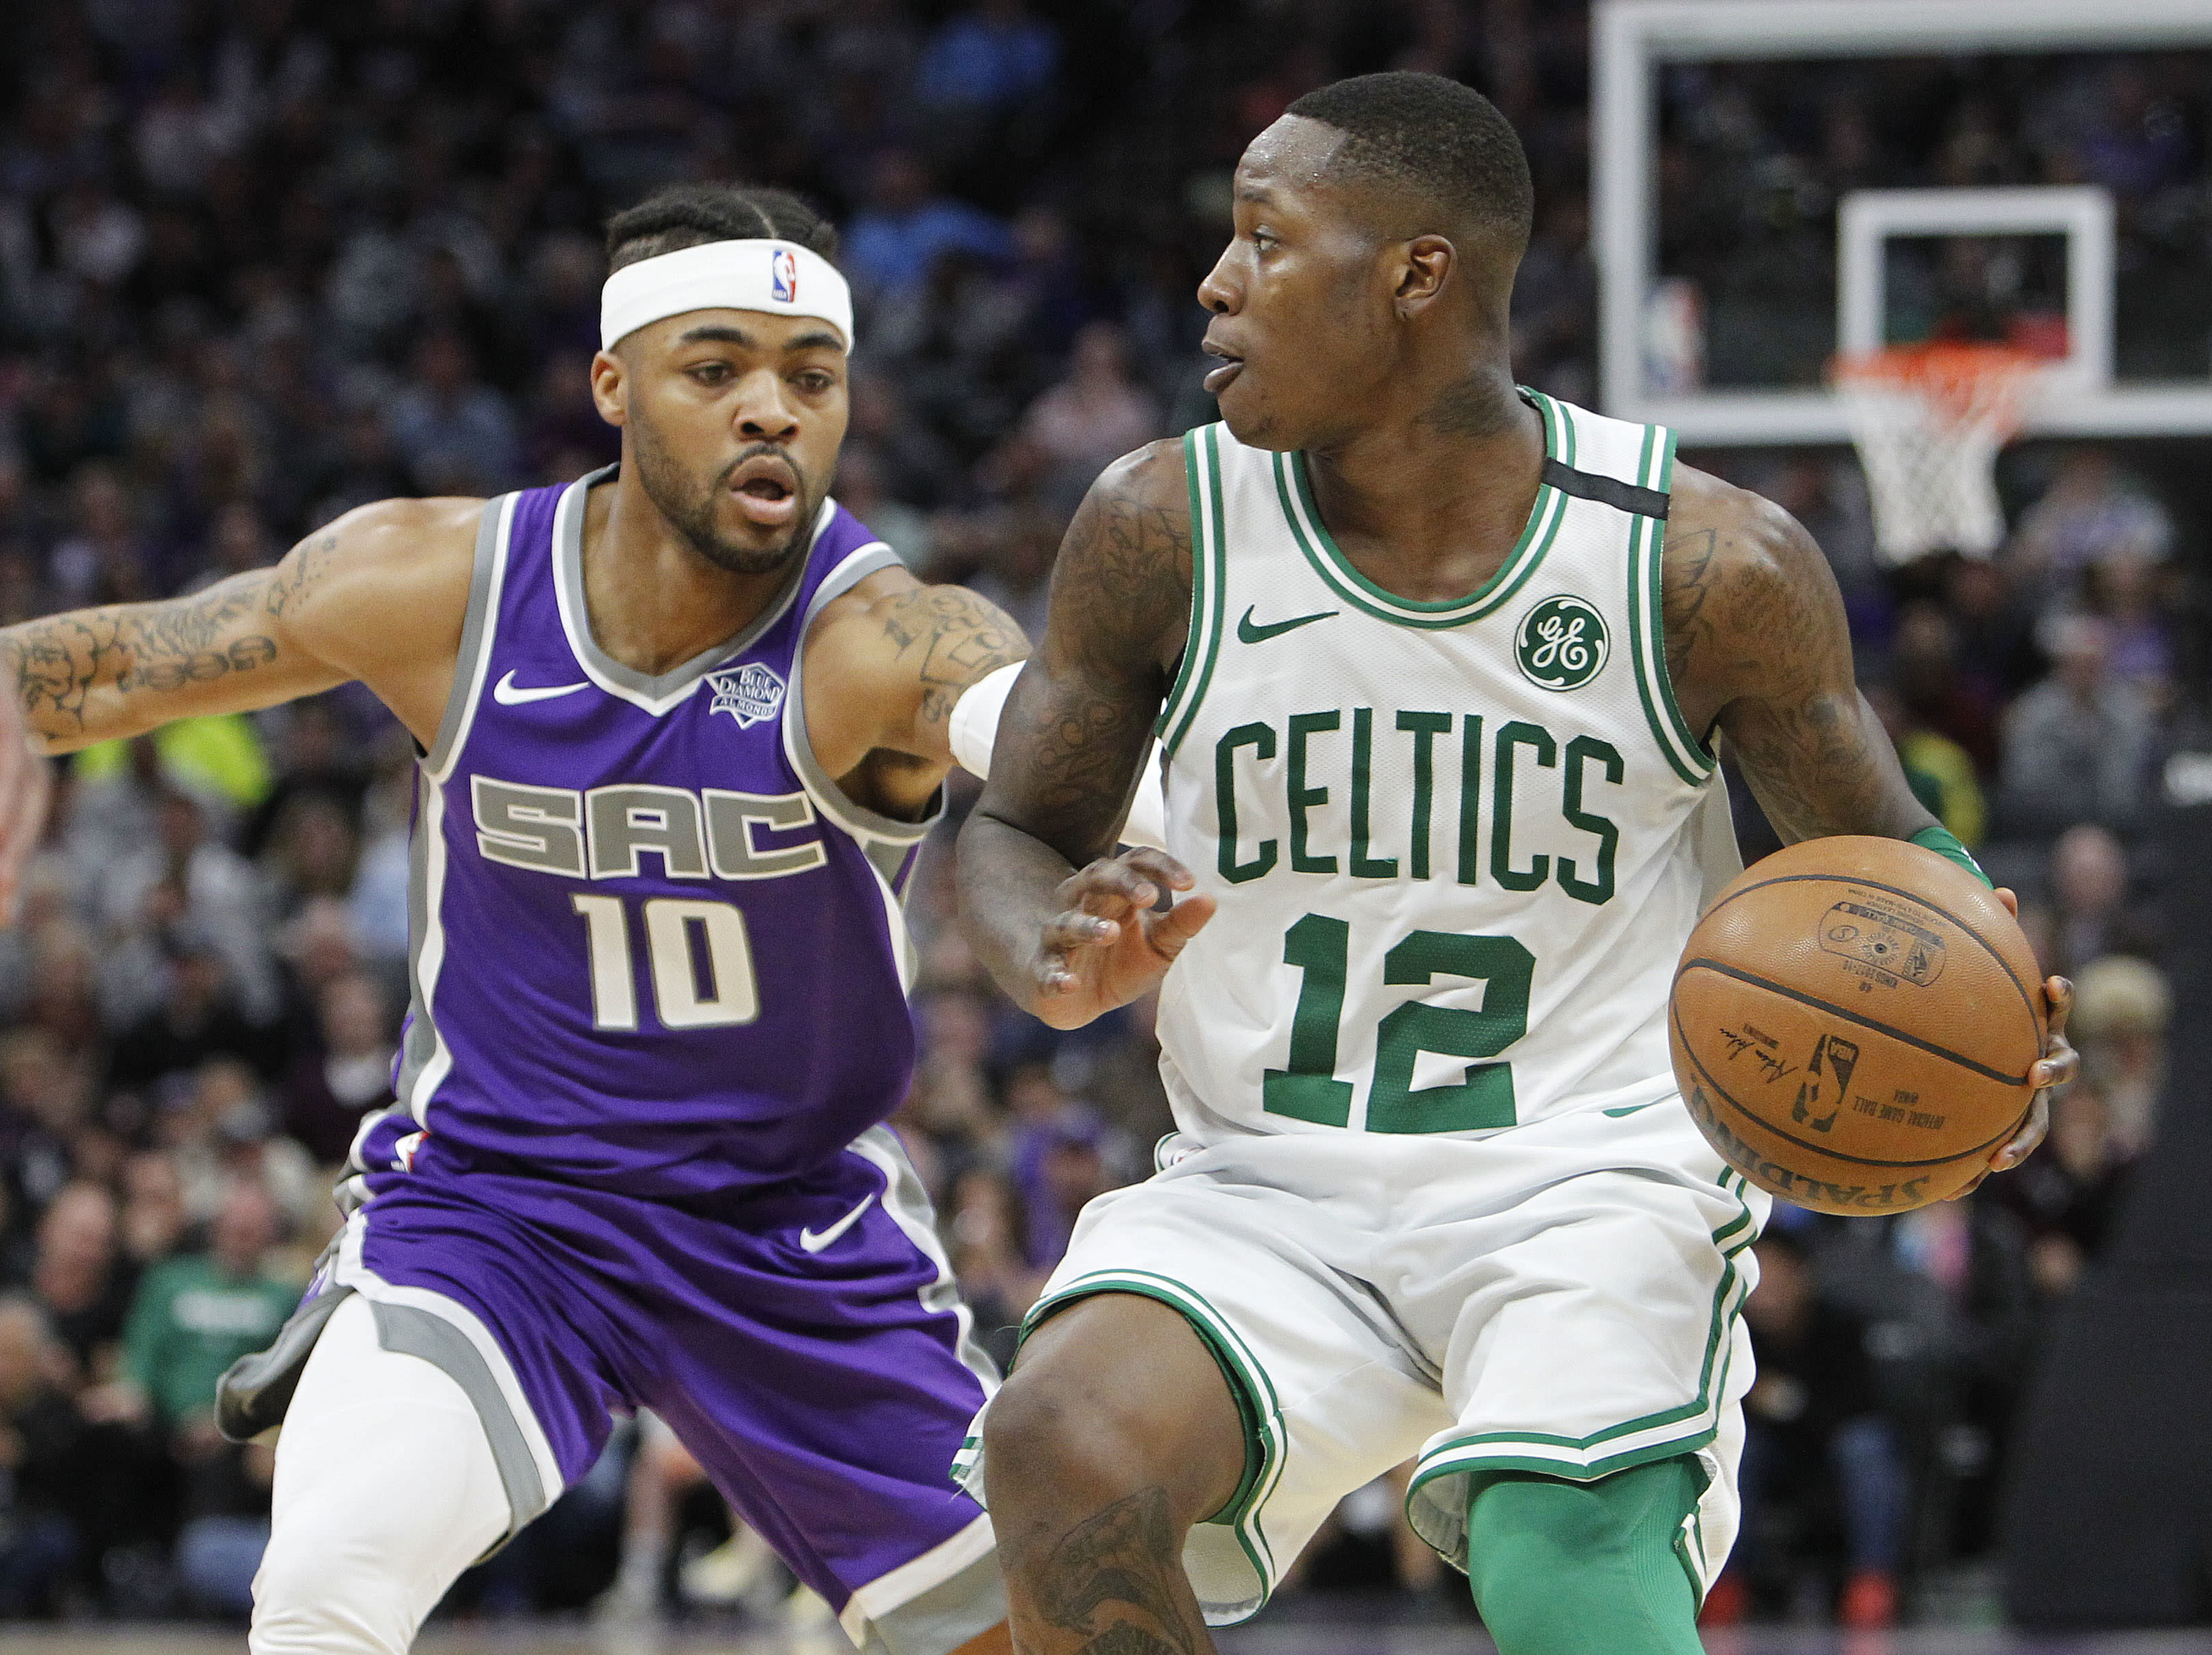 Fantasy Basketball Stock Watch: Terry Rozier on the rise